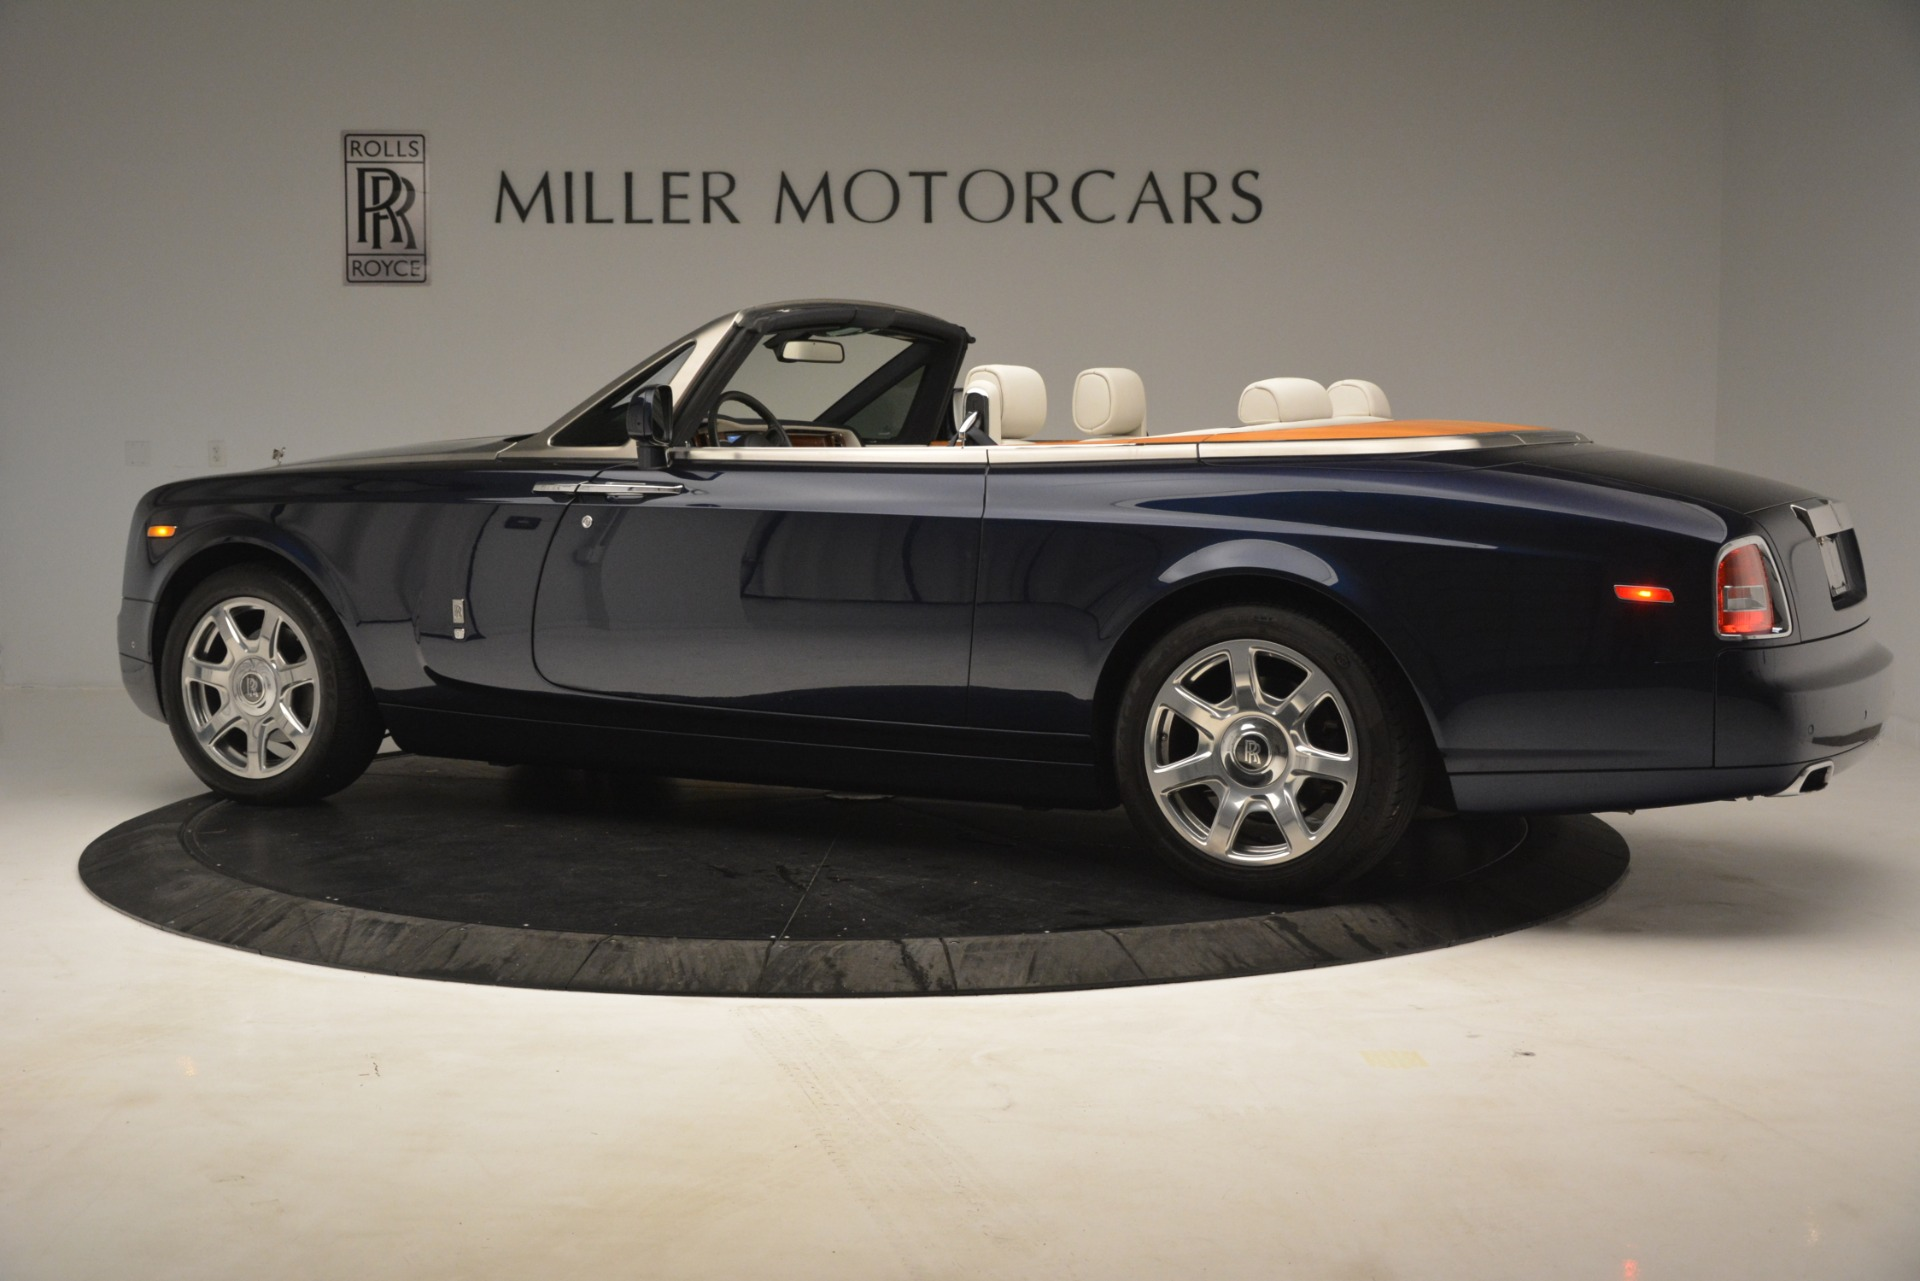 Used 2013 Rolls-Royce Phantom Drophead Coupe  For Sale In Greenwich, CT 2999_p5